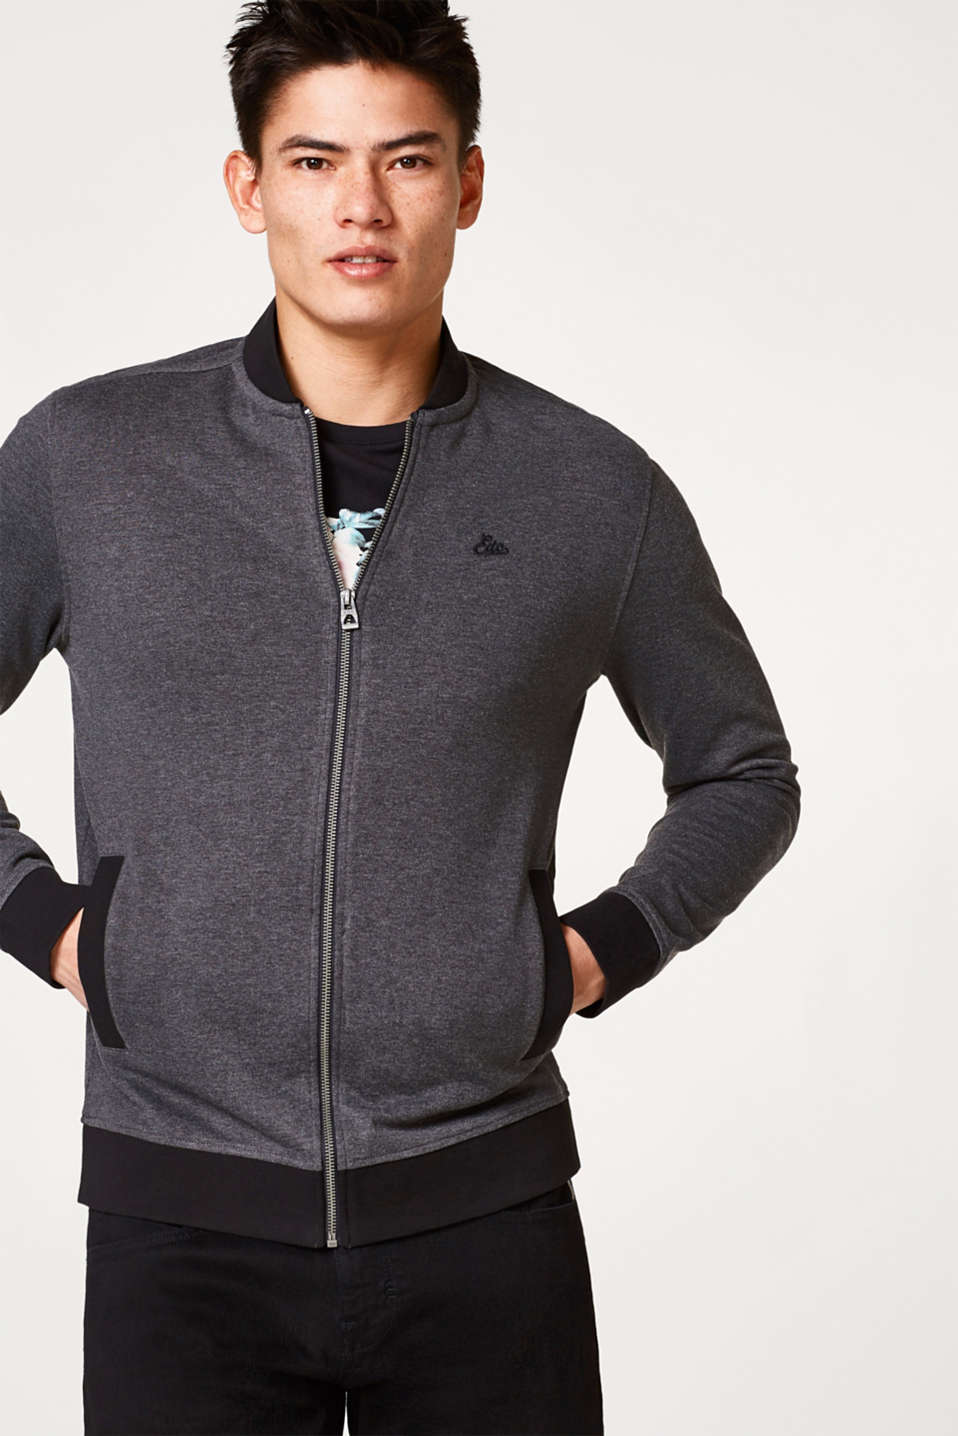 edc - Sporty sweatshirt cardigan with a stand-up collar